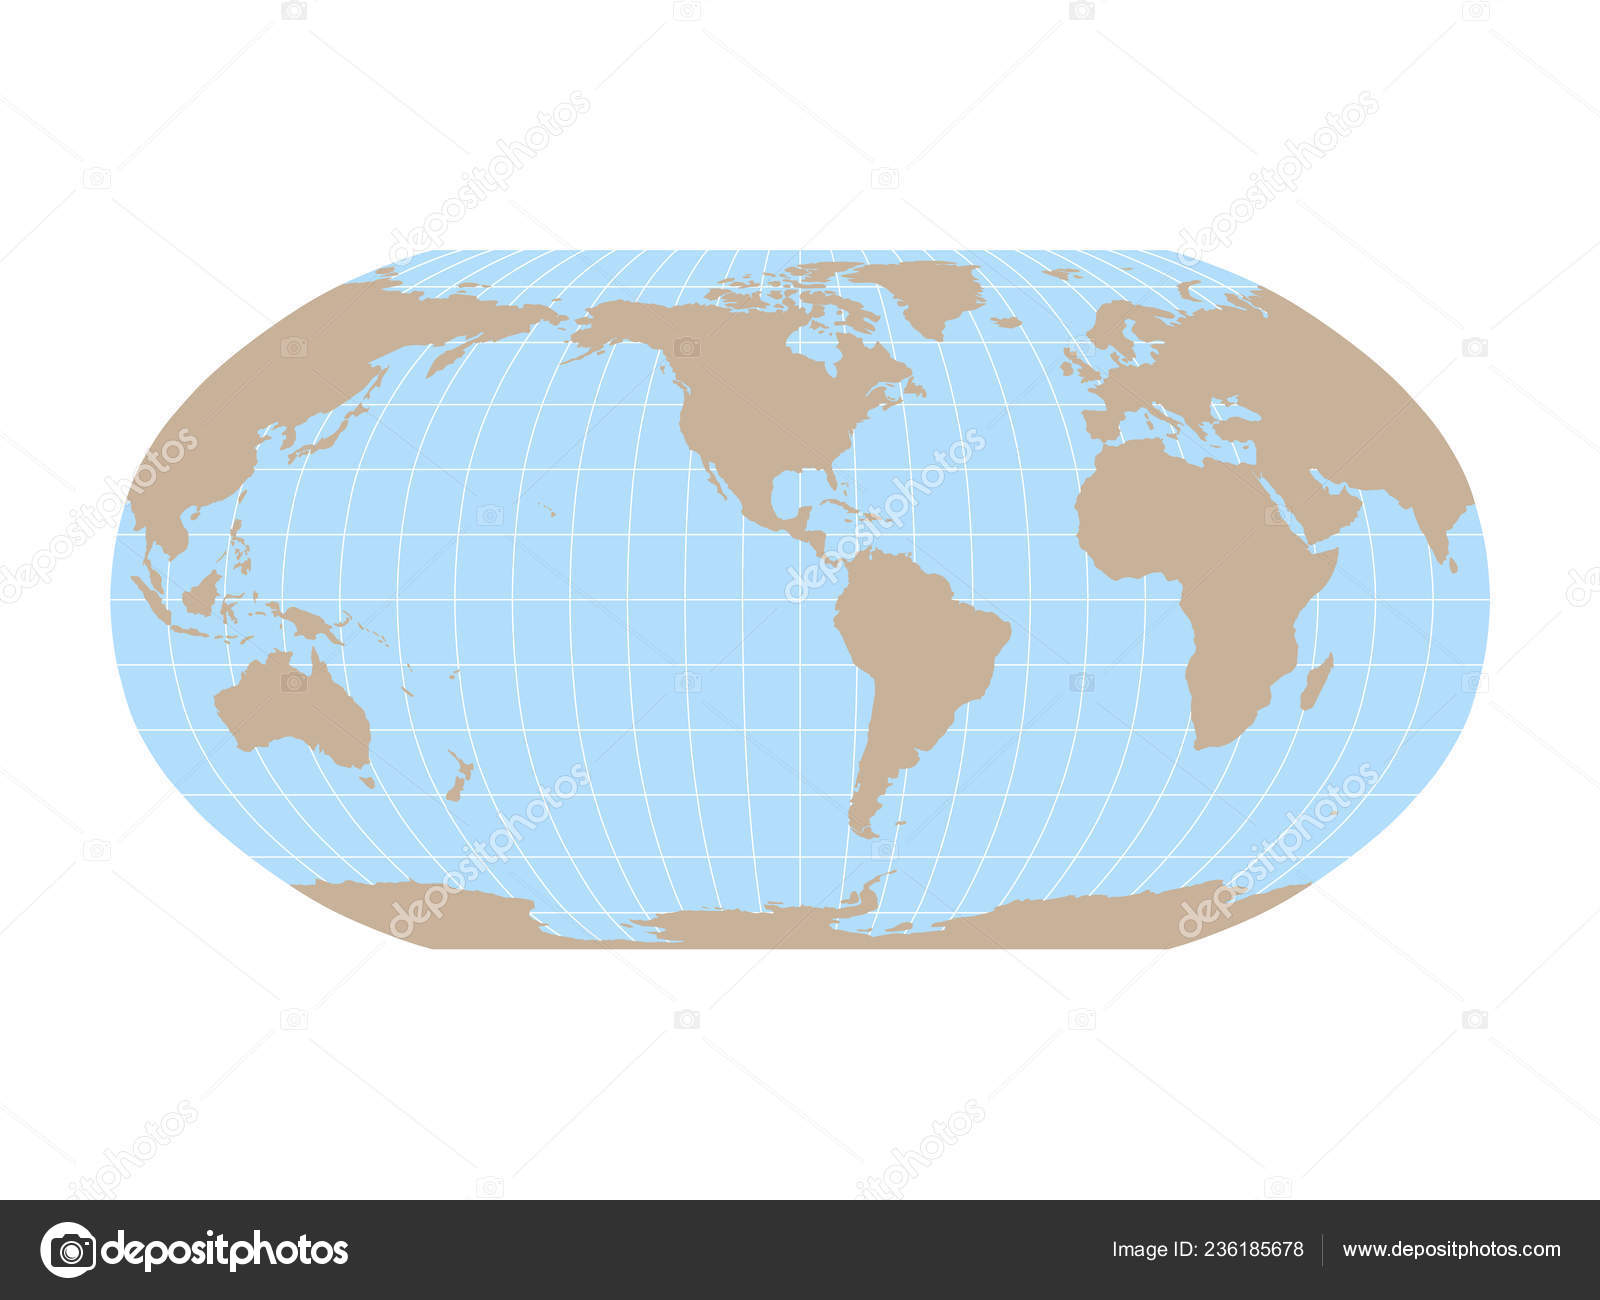 World Map In Robinson Projection With Meridians And Parallels Grid